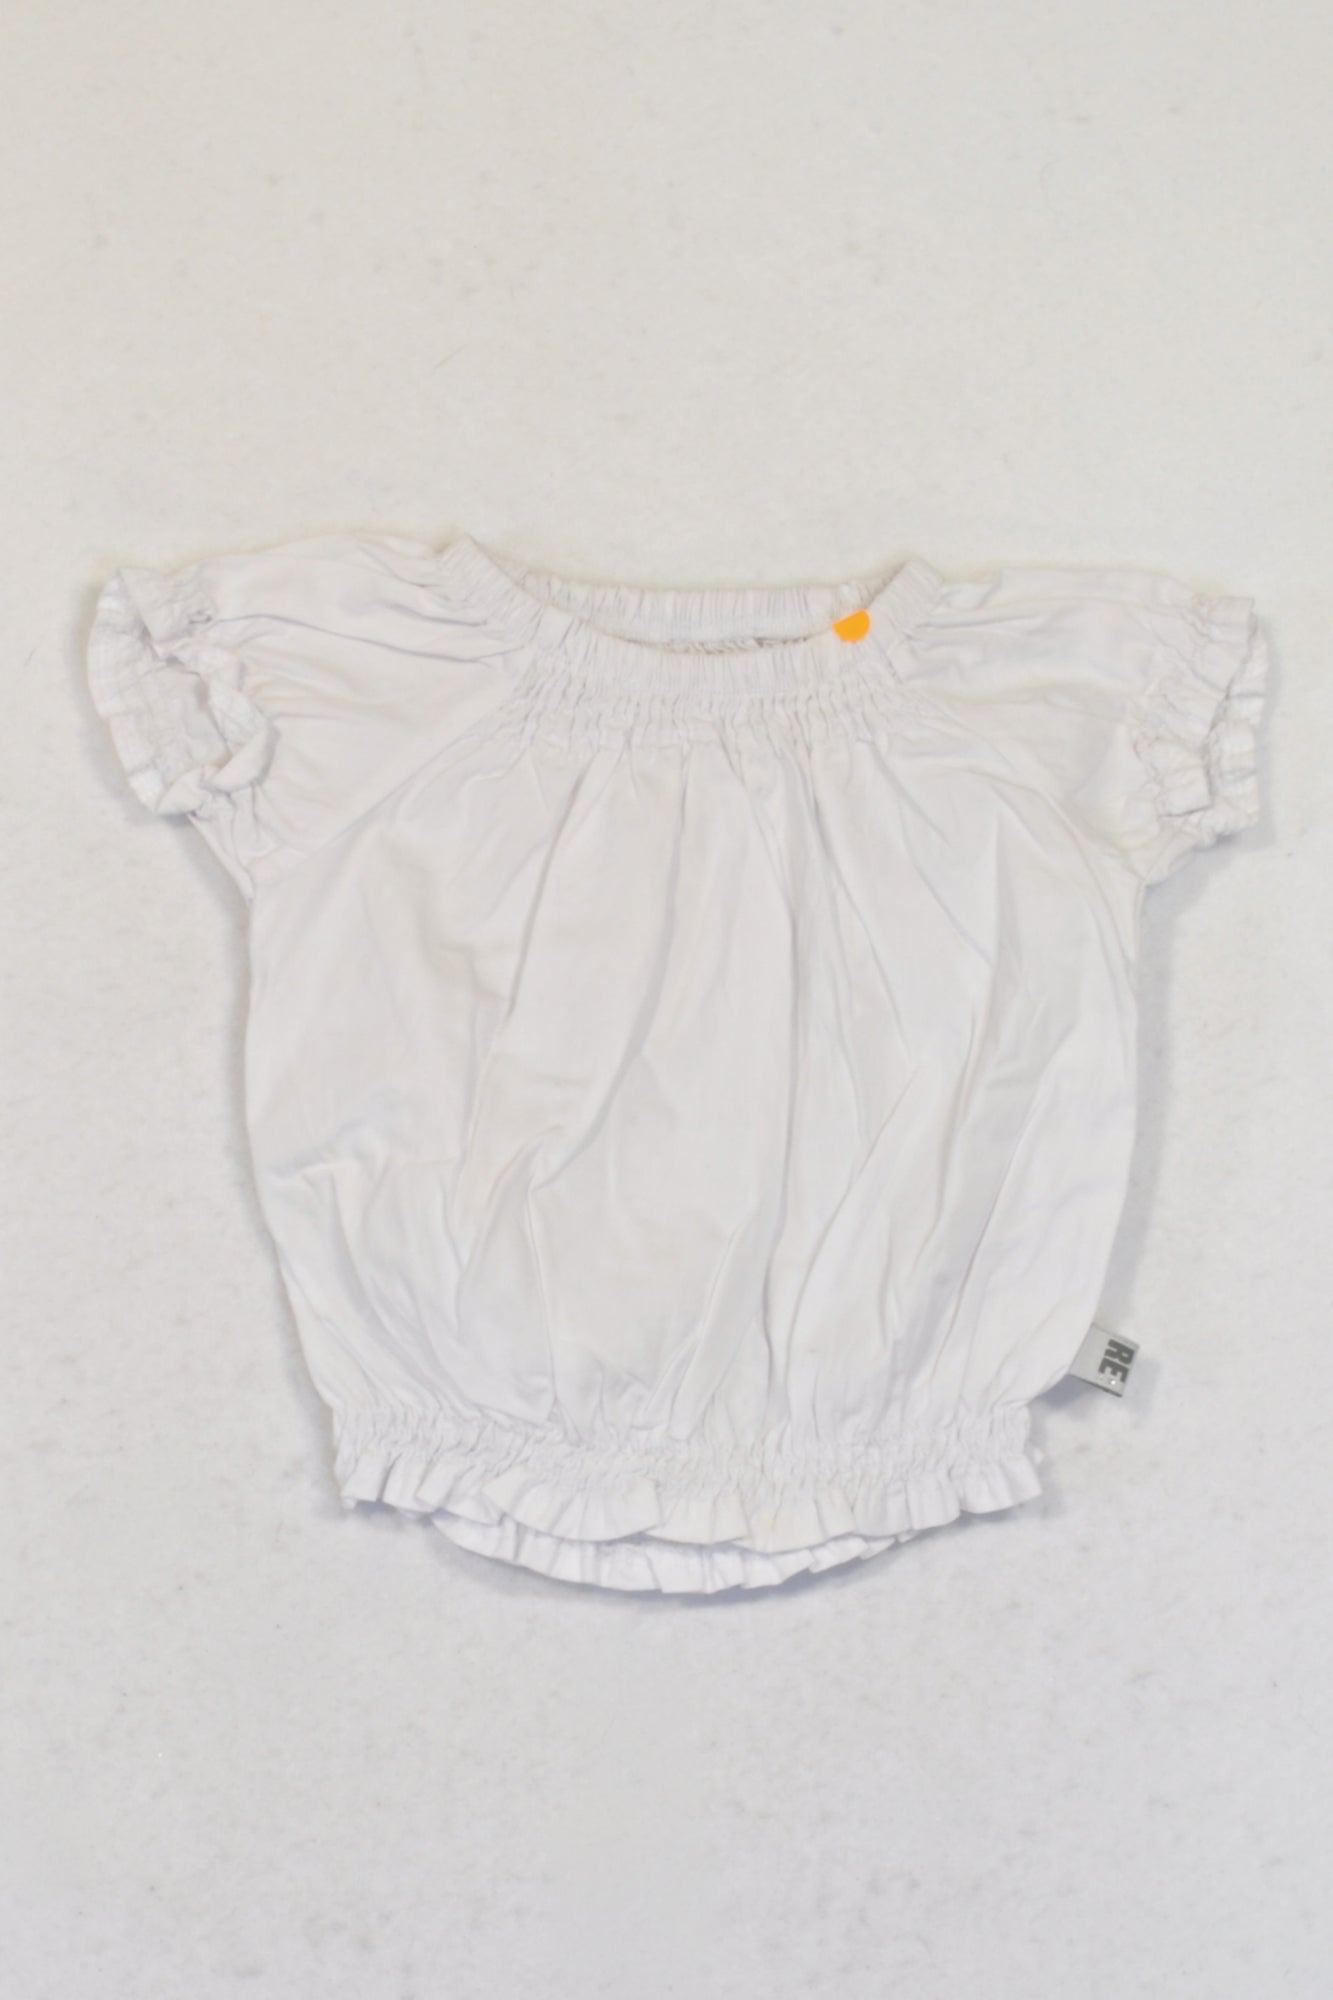 Woolworths White Gathered Bubble Top Girls 3-6 months